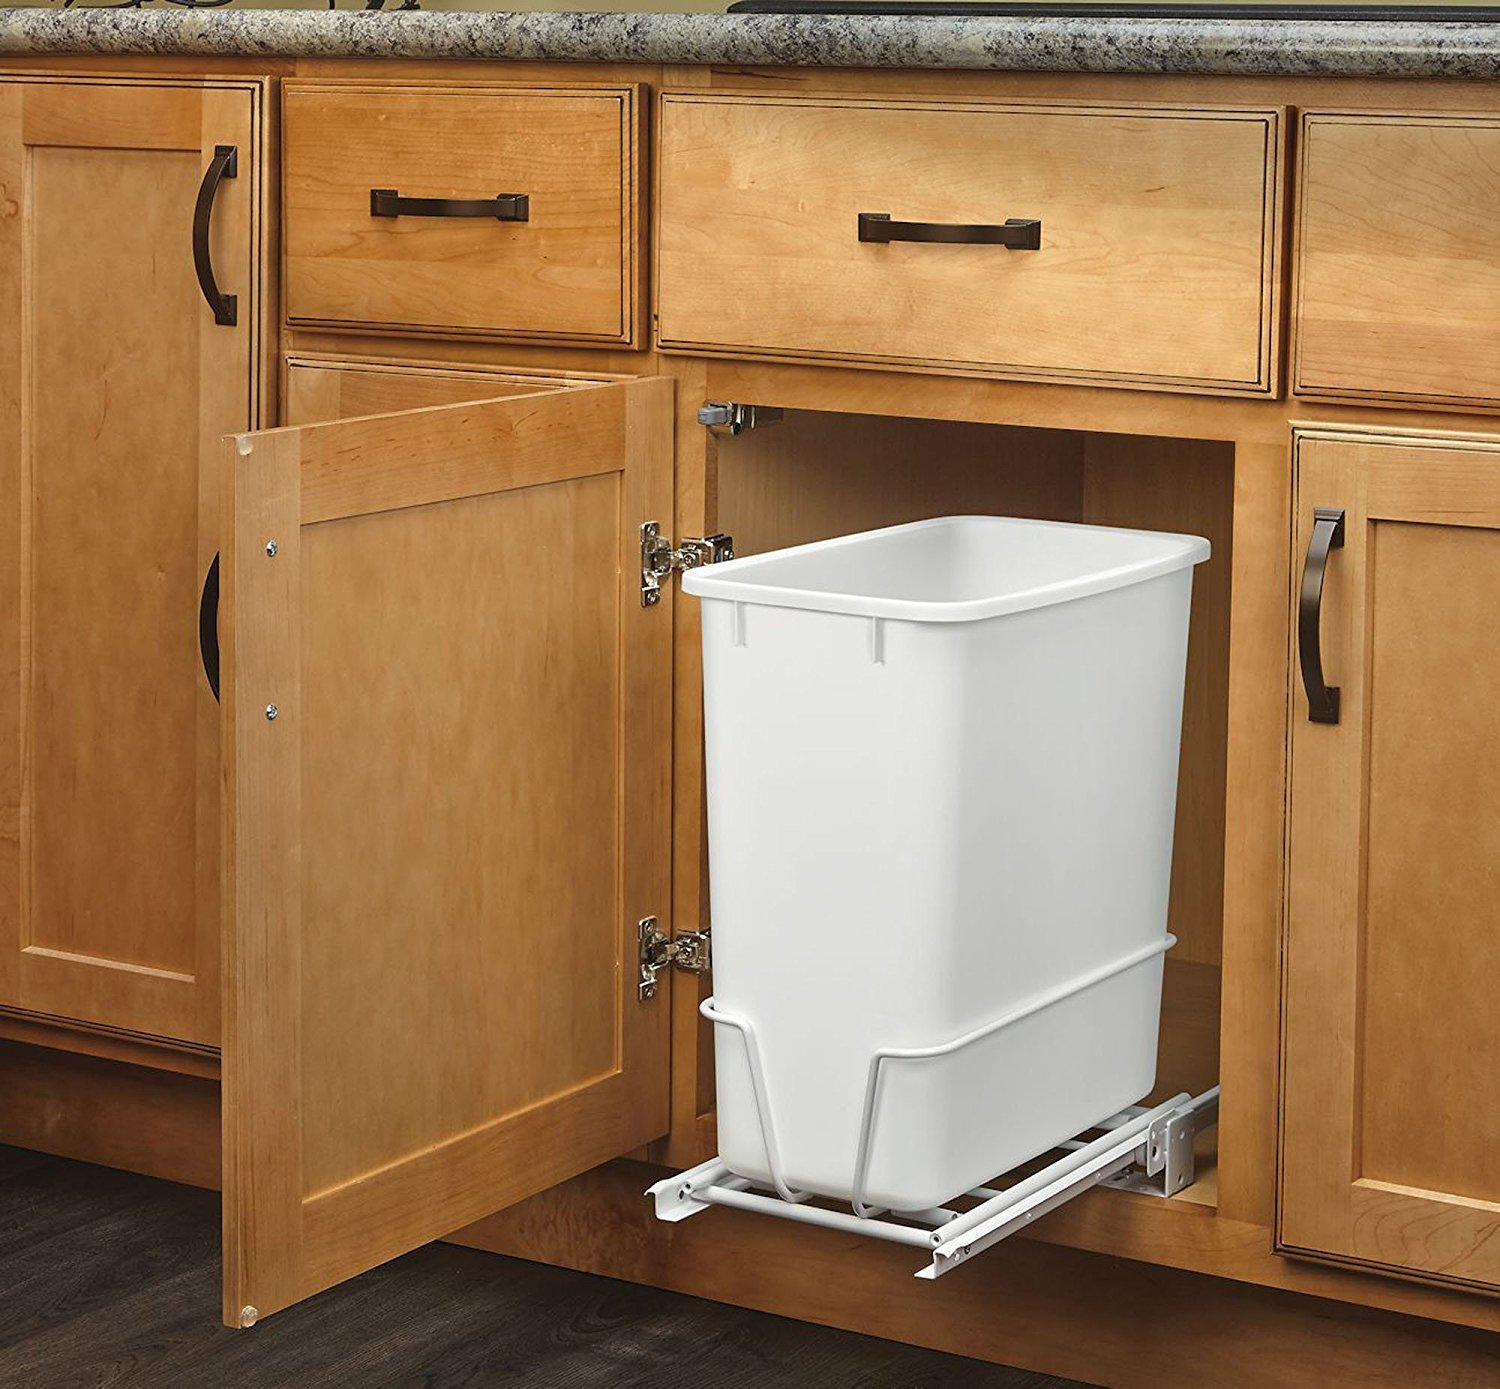 Deep Kitchen Cabinet Solutions: RV Interior Upgrades: Cabinet Storage Solutions